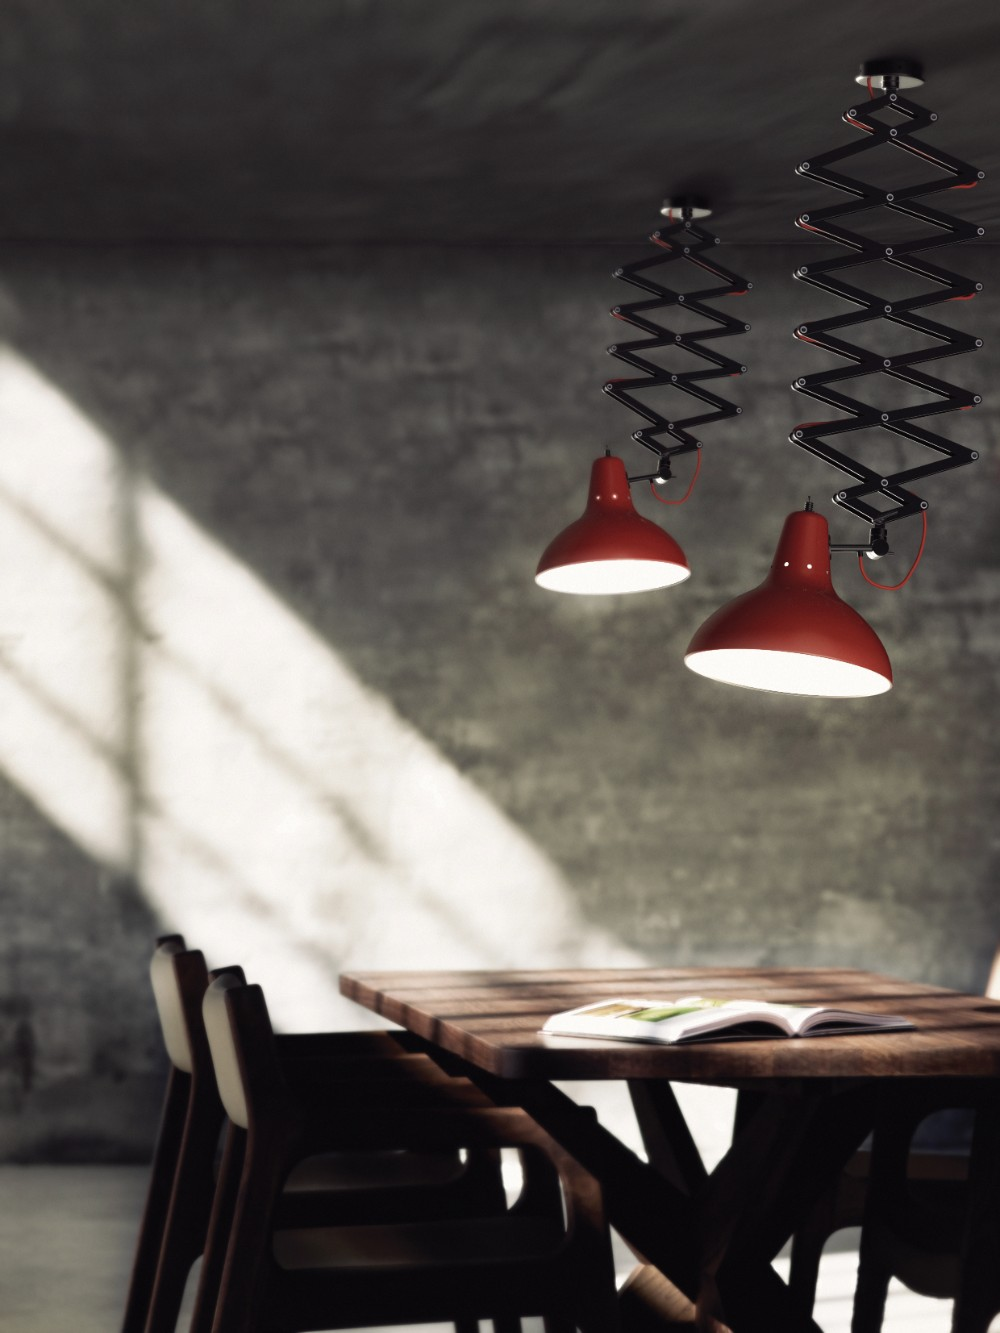 Find Out The Best Lighting Designs for Your Industrial Decor (1) lighting design Find Out The Best Lighting Designs for Your Industrial Decor Find Out The Best Lighting Designs for Your Industrial Decor 4